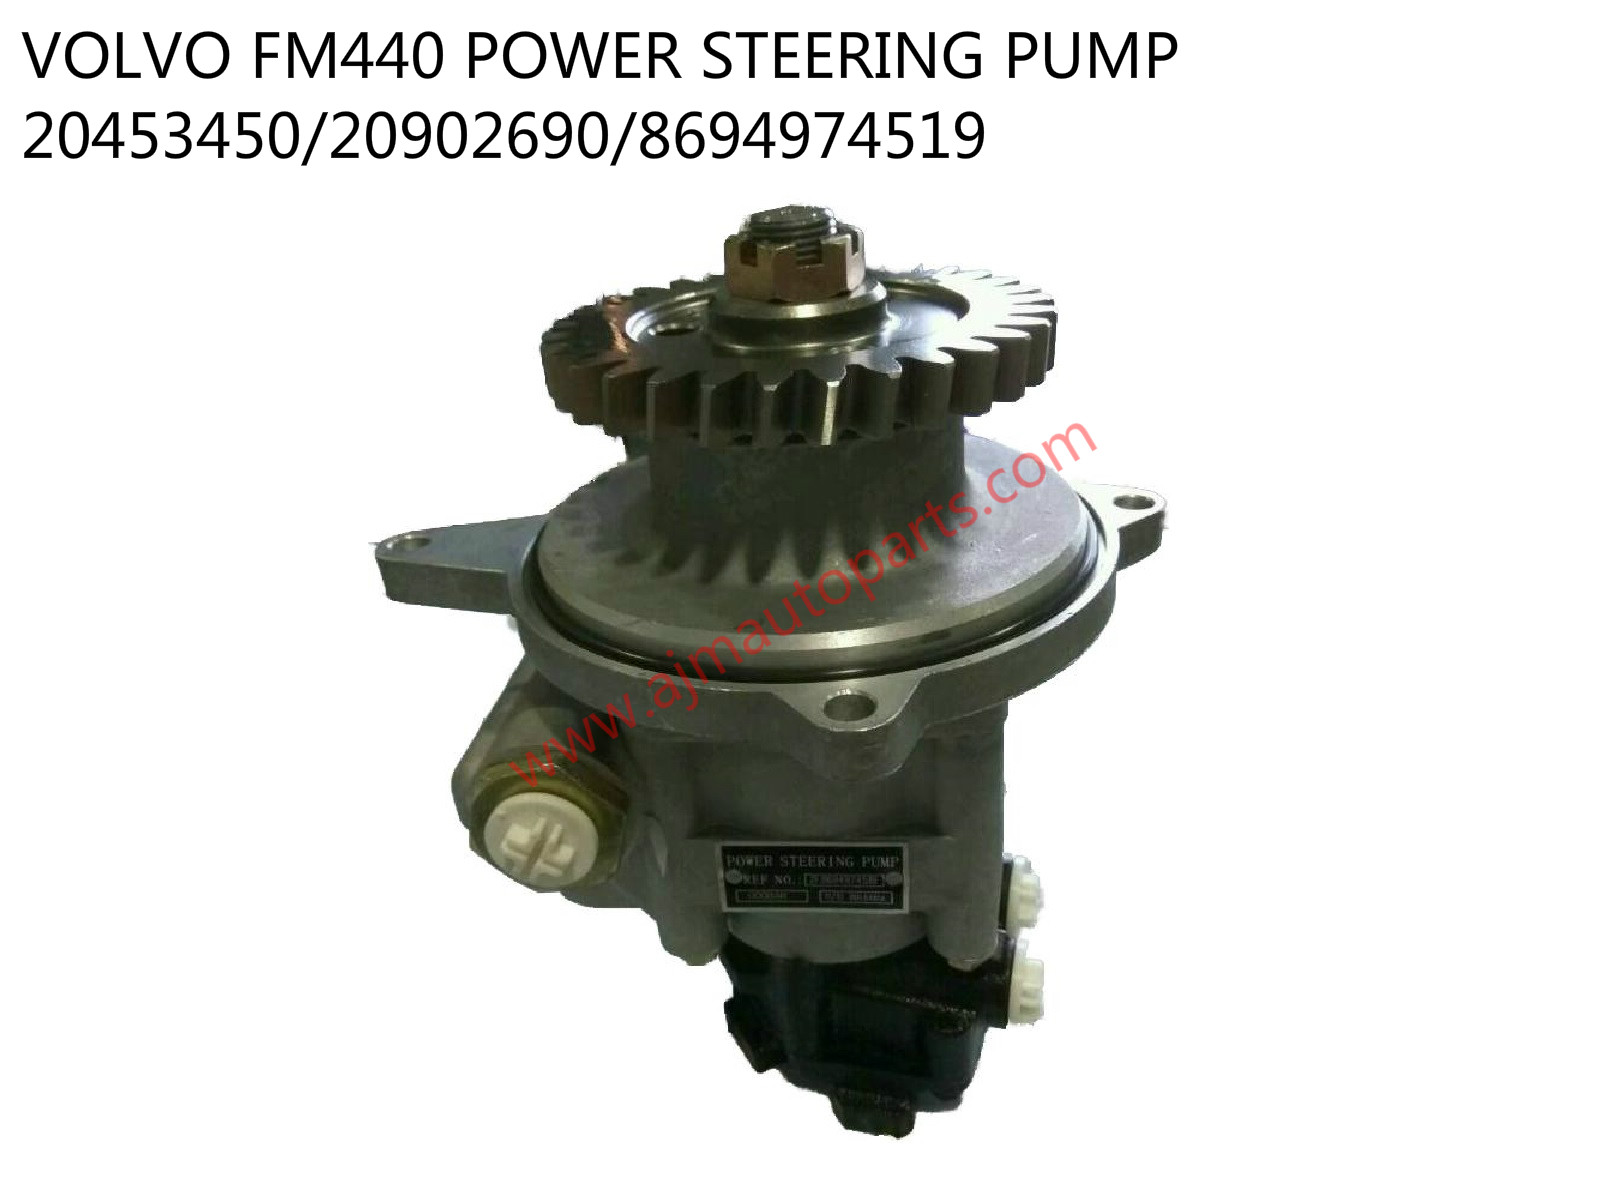 VOLVO FM440 POWER STEERING PUMP-20453450-20902690-869497419-2